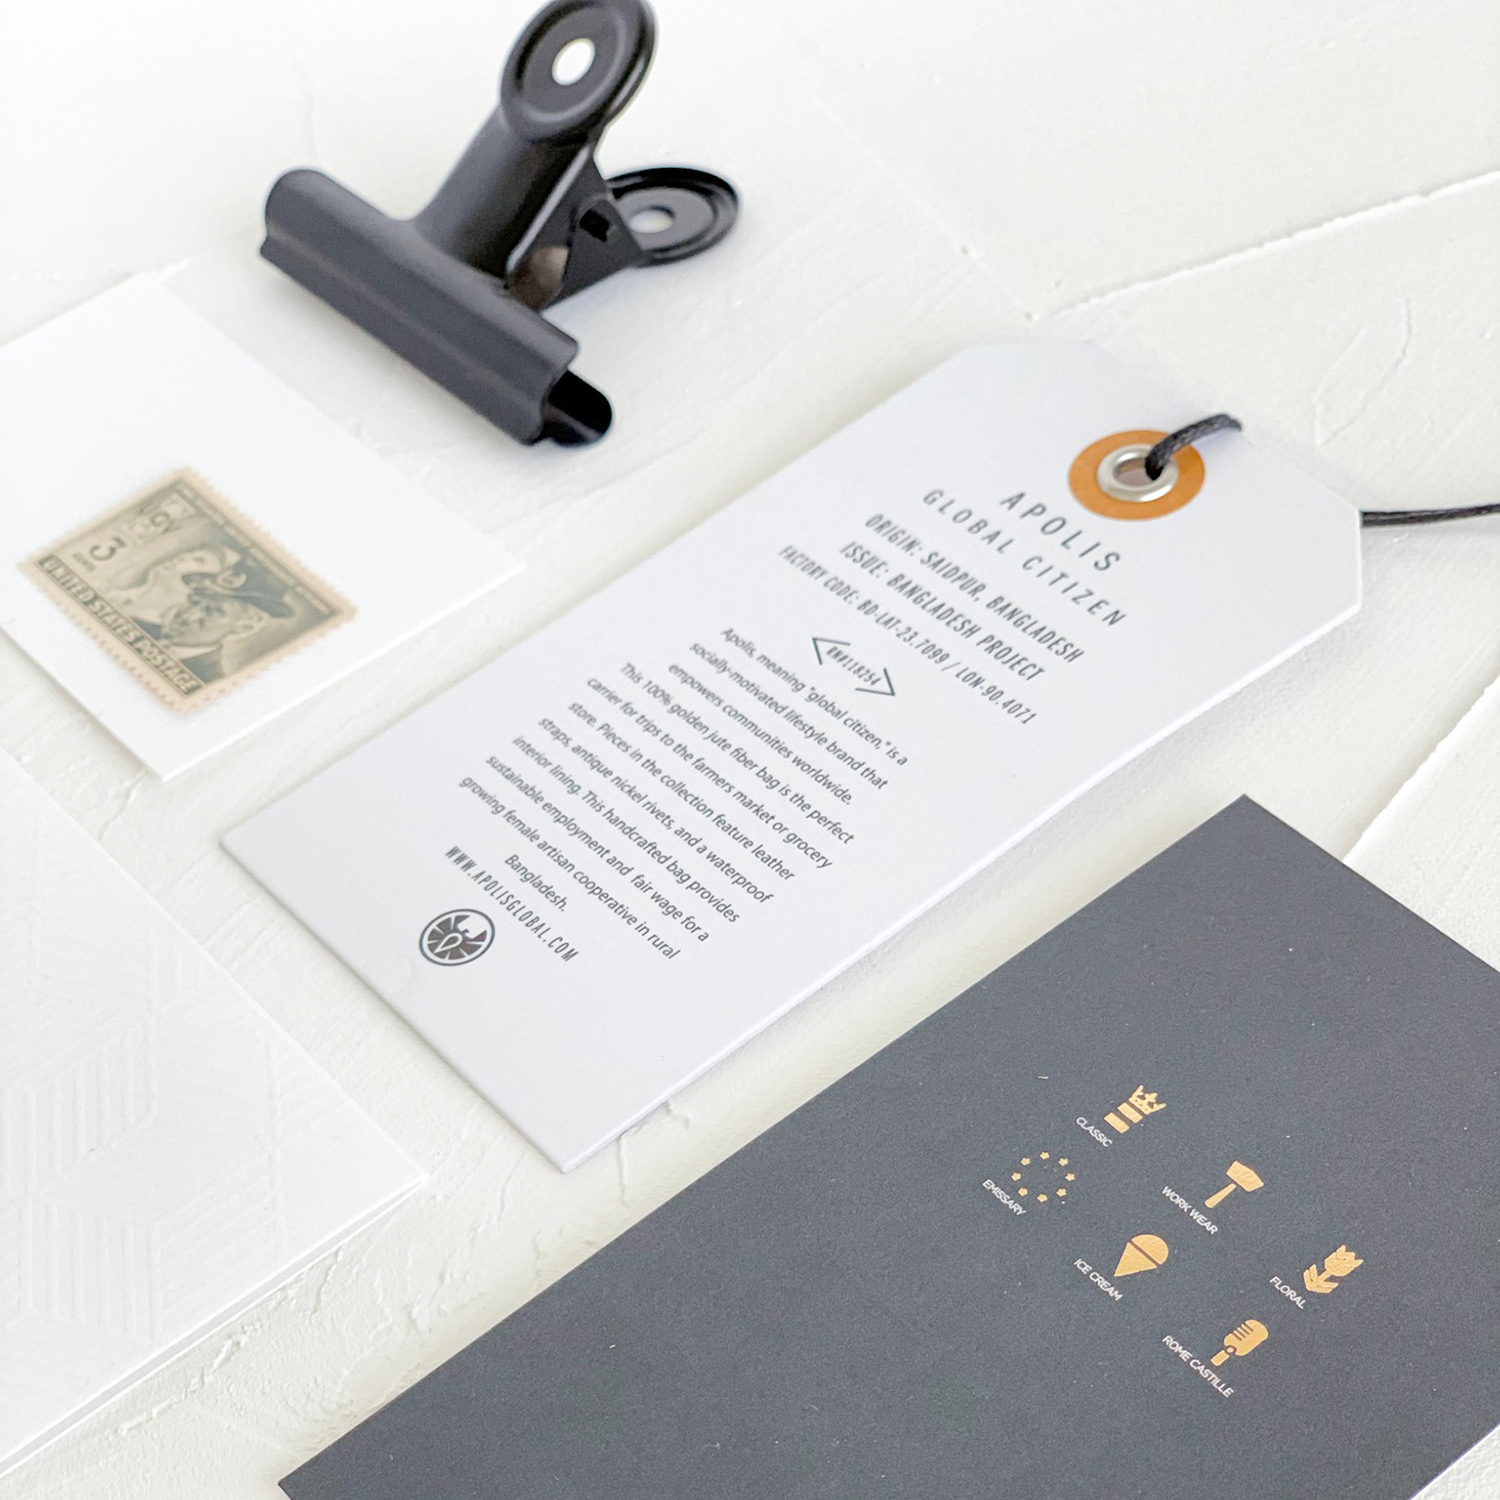 Paper on My Desk, a new mini series by Akula Kreative | White debossed stationery, tag, foil-stamped card in neutral colors